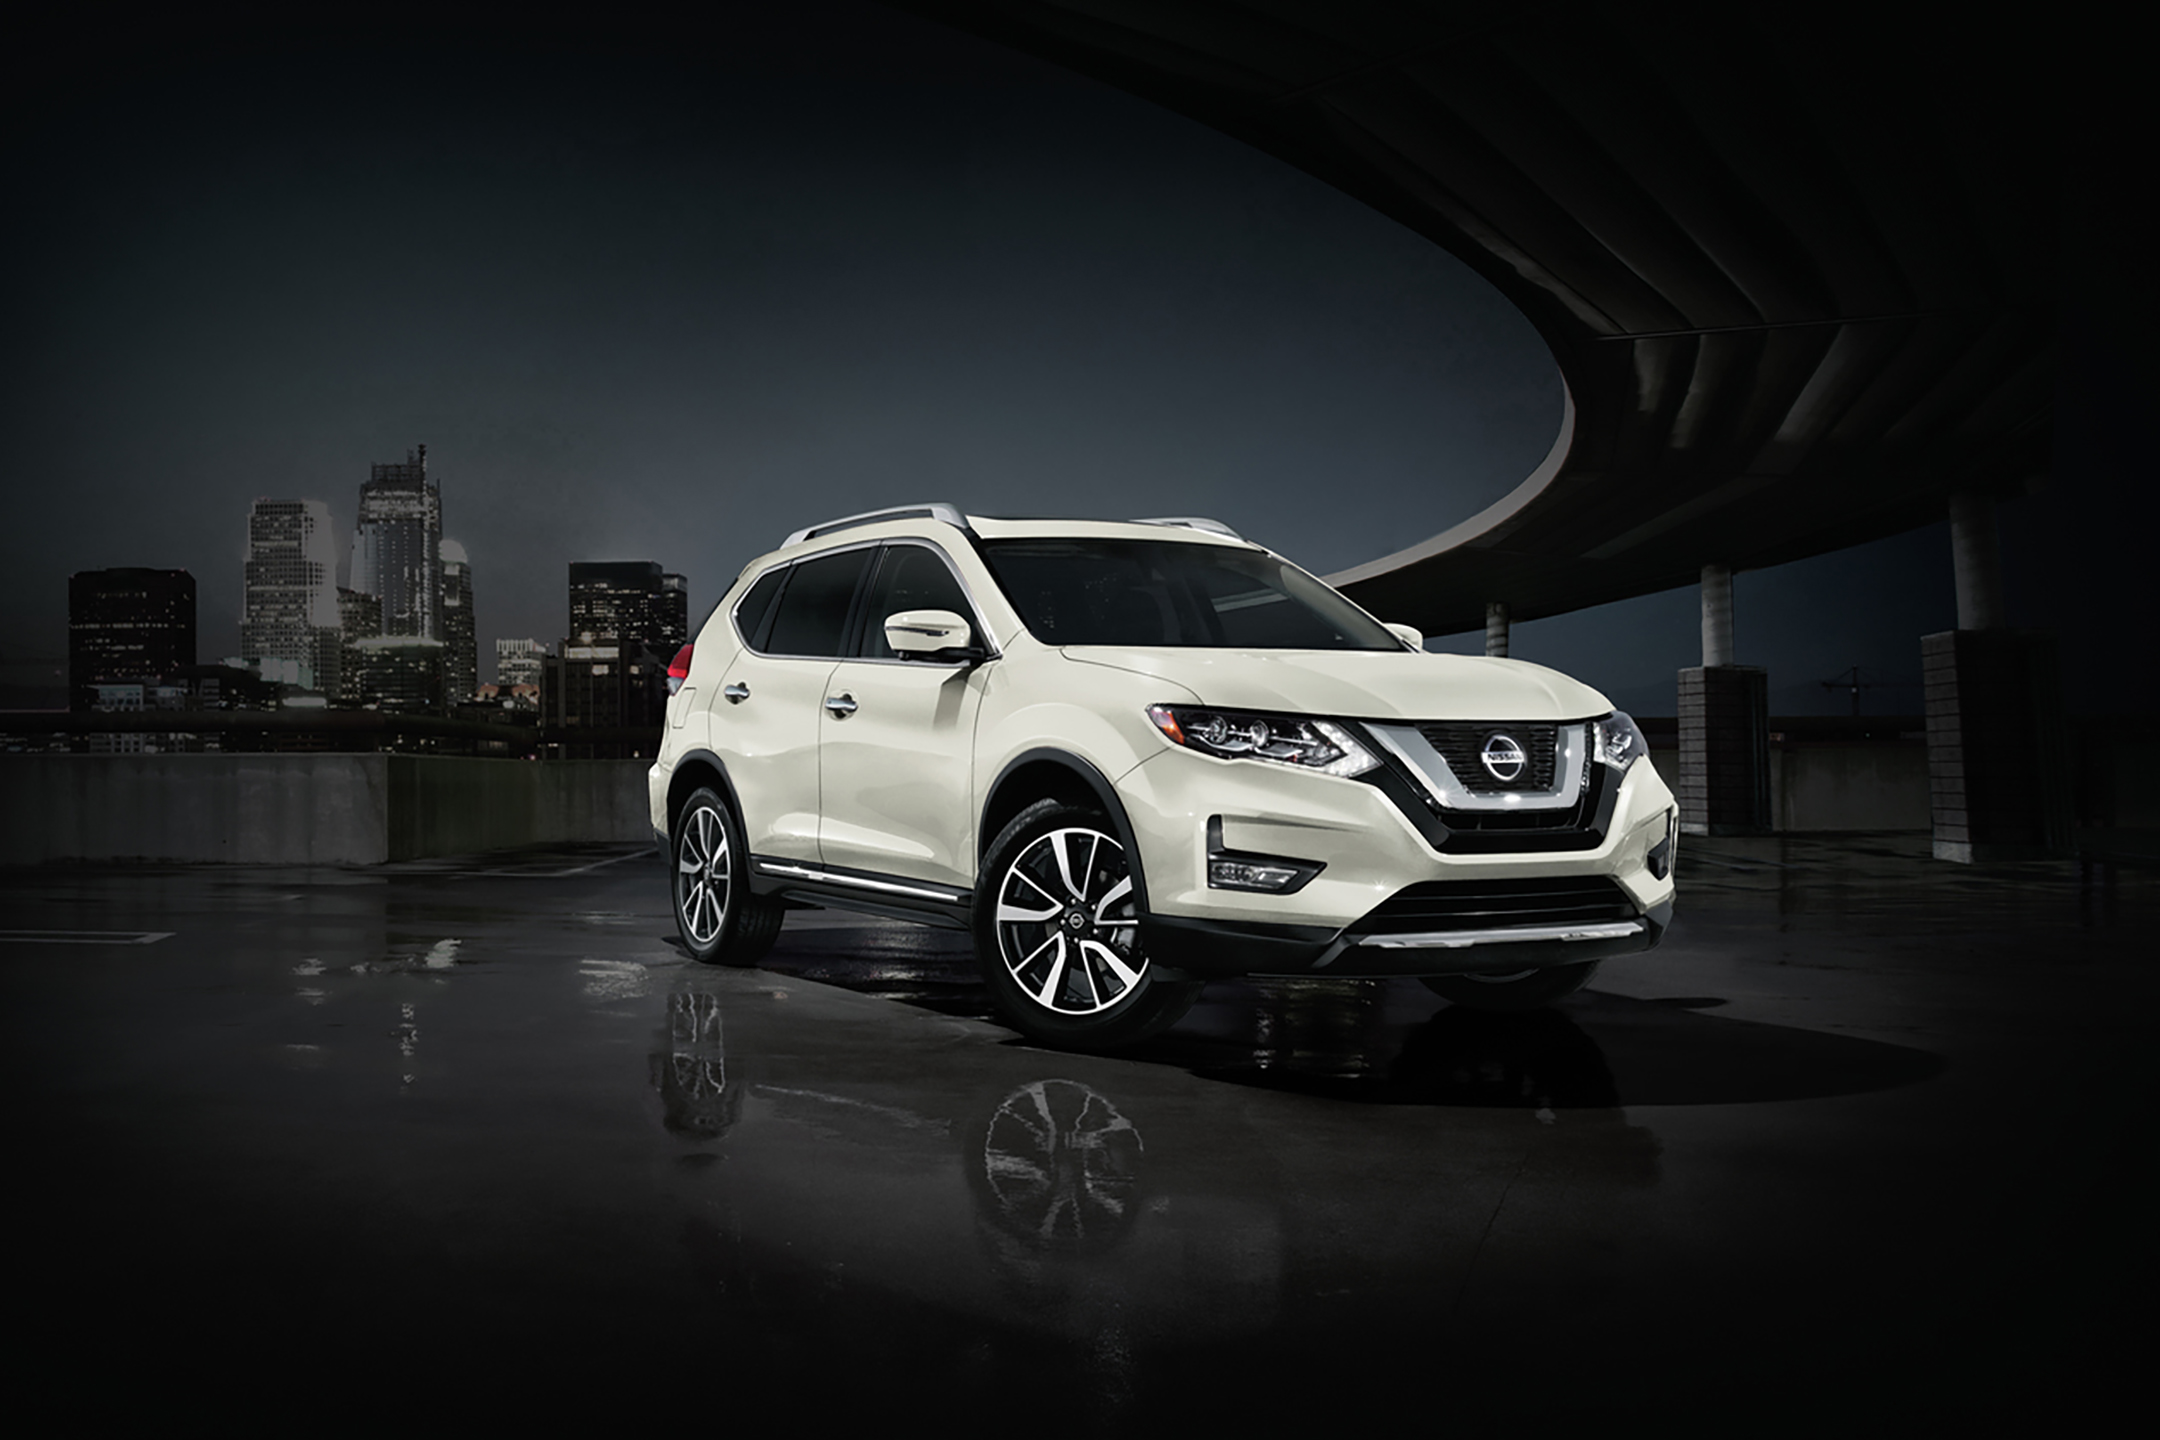 2020-Nissan-Rogue_White-source